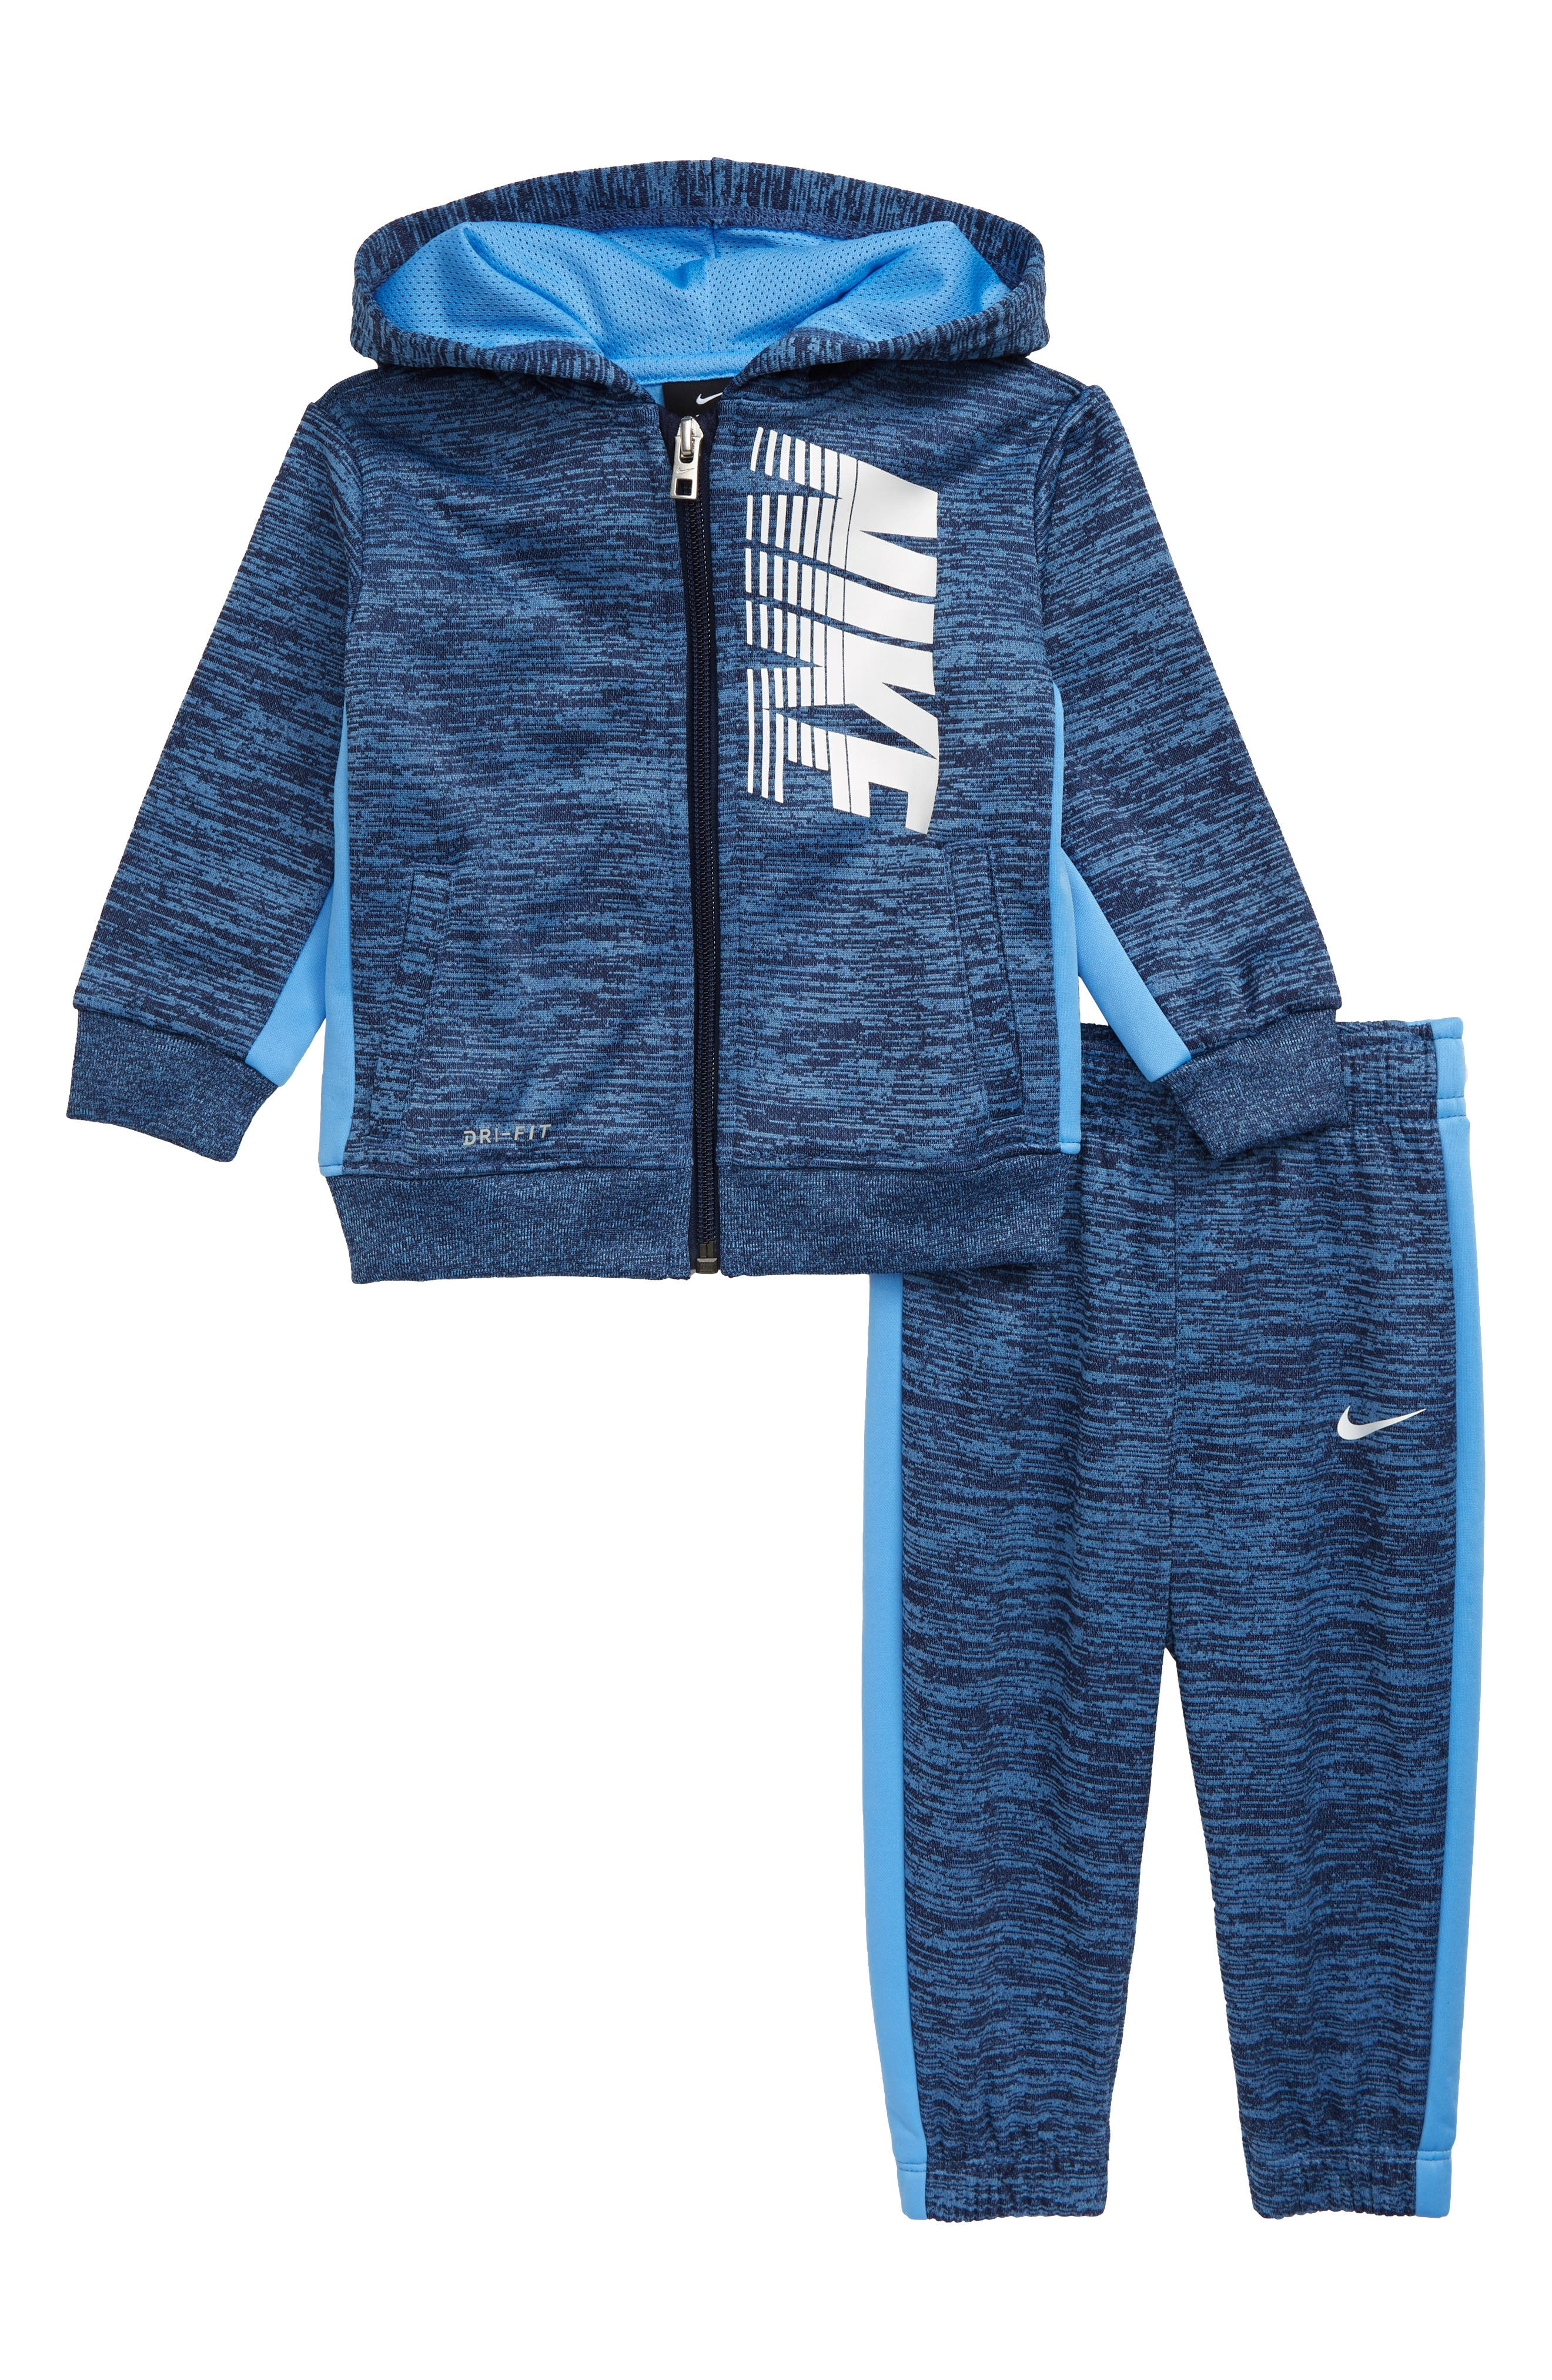 Infant Boys Nike DriFit Therma Block Full Zip Hoodie  Sweatpants Set